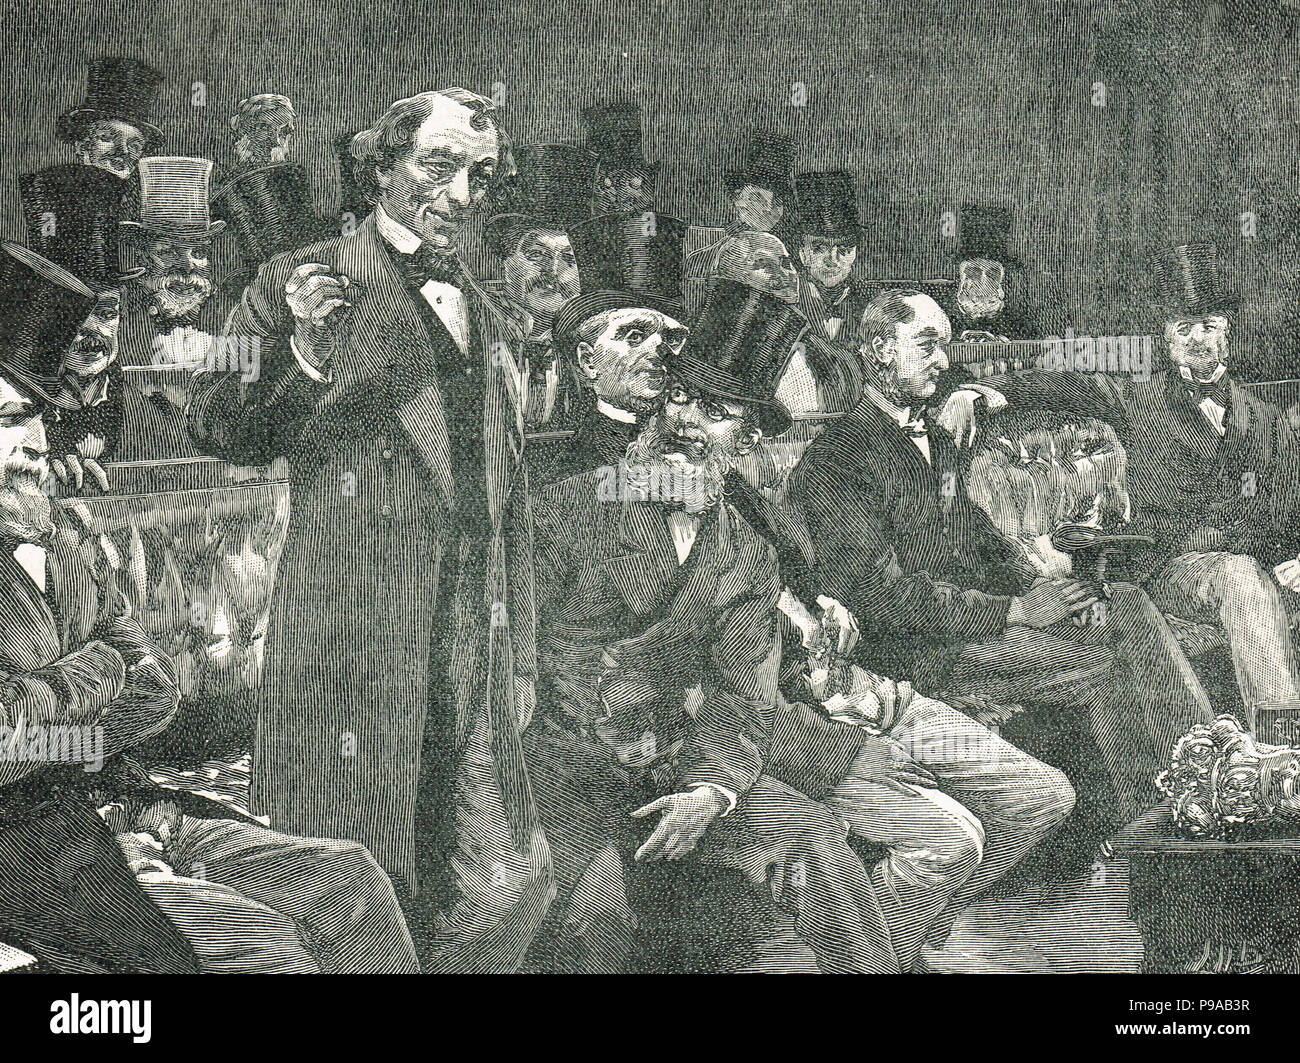 Benjamin Disraeli, relating his story about Dry Champagne, replying to the member for Louth A M Sullivan, during the course of the Irish Coercion bill of 1875 - Stock Image